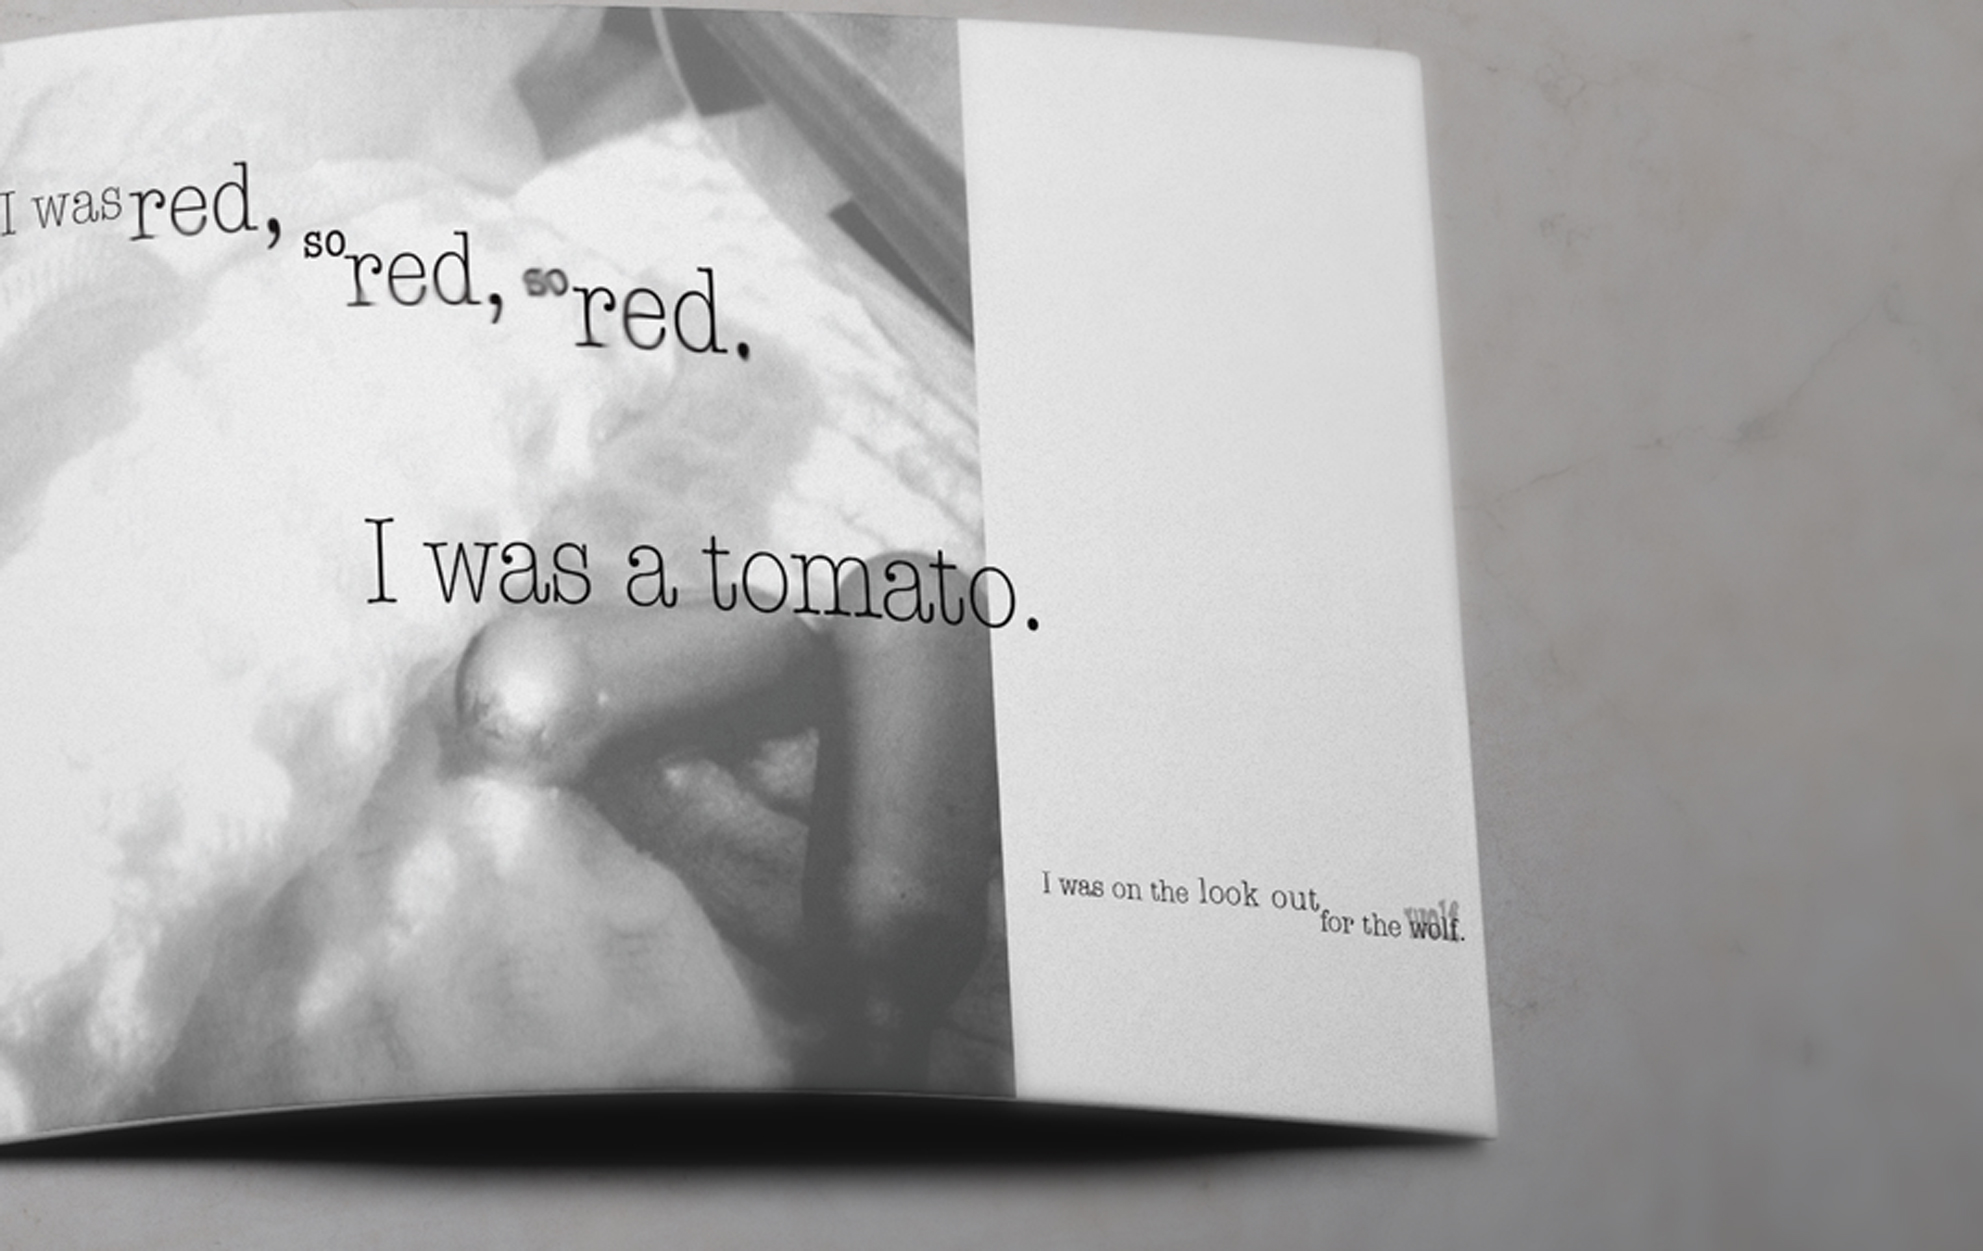 Little Red Riding Hood a poem by Ania Walwicz.